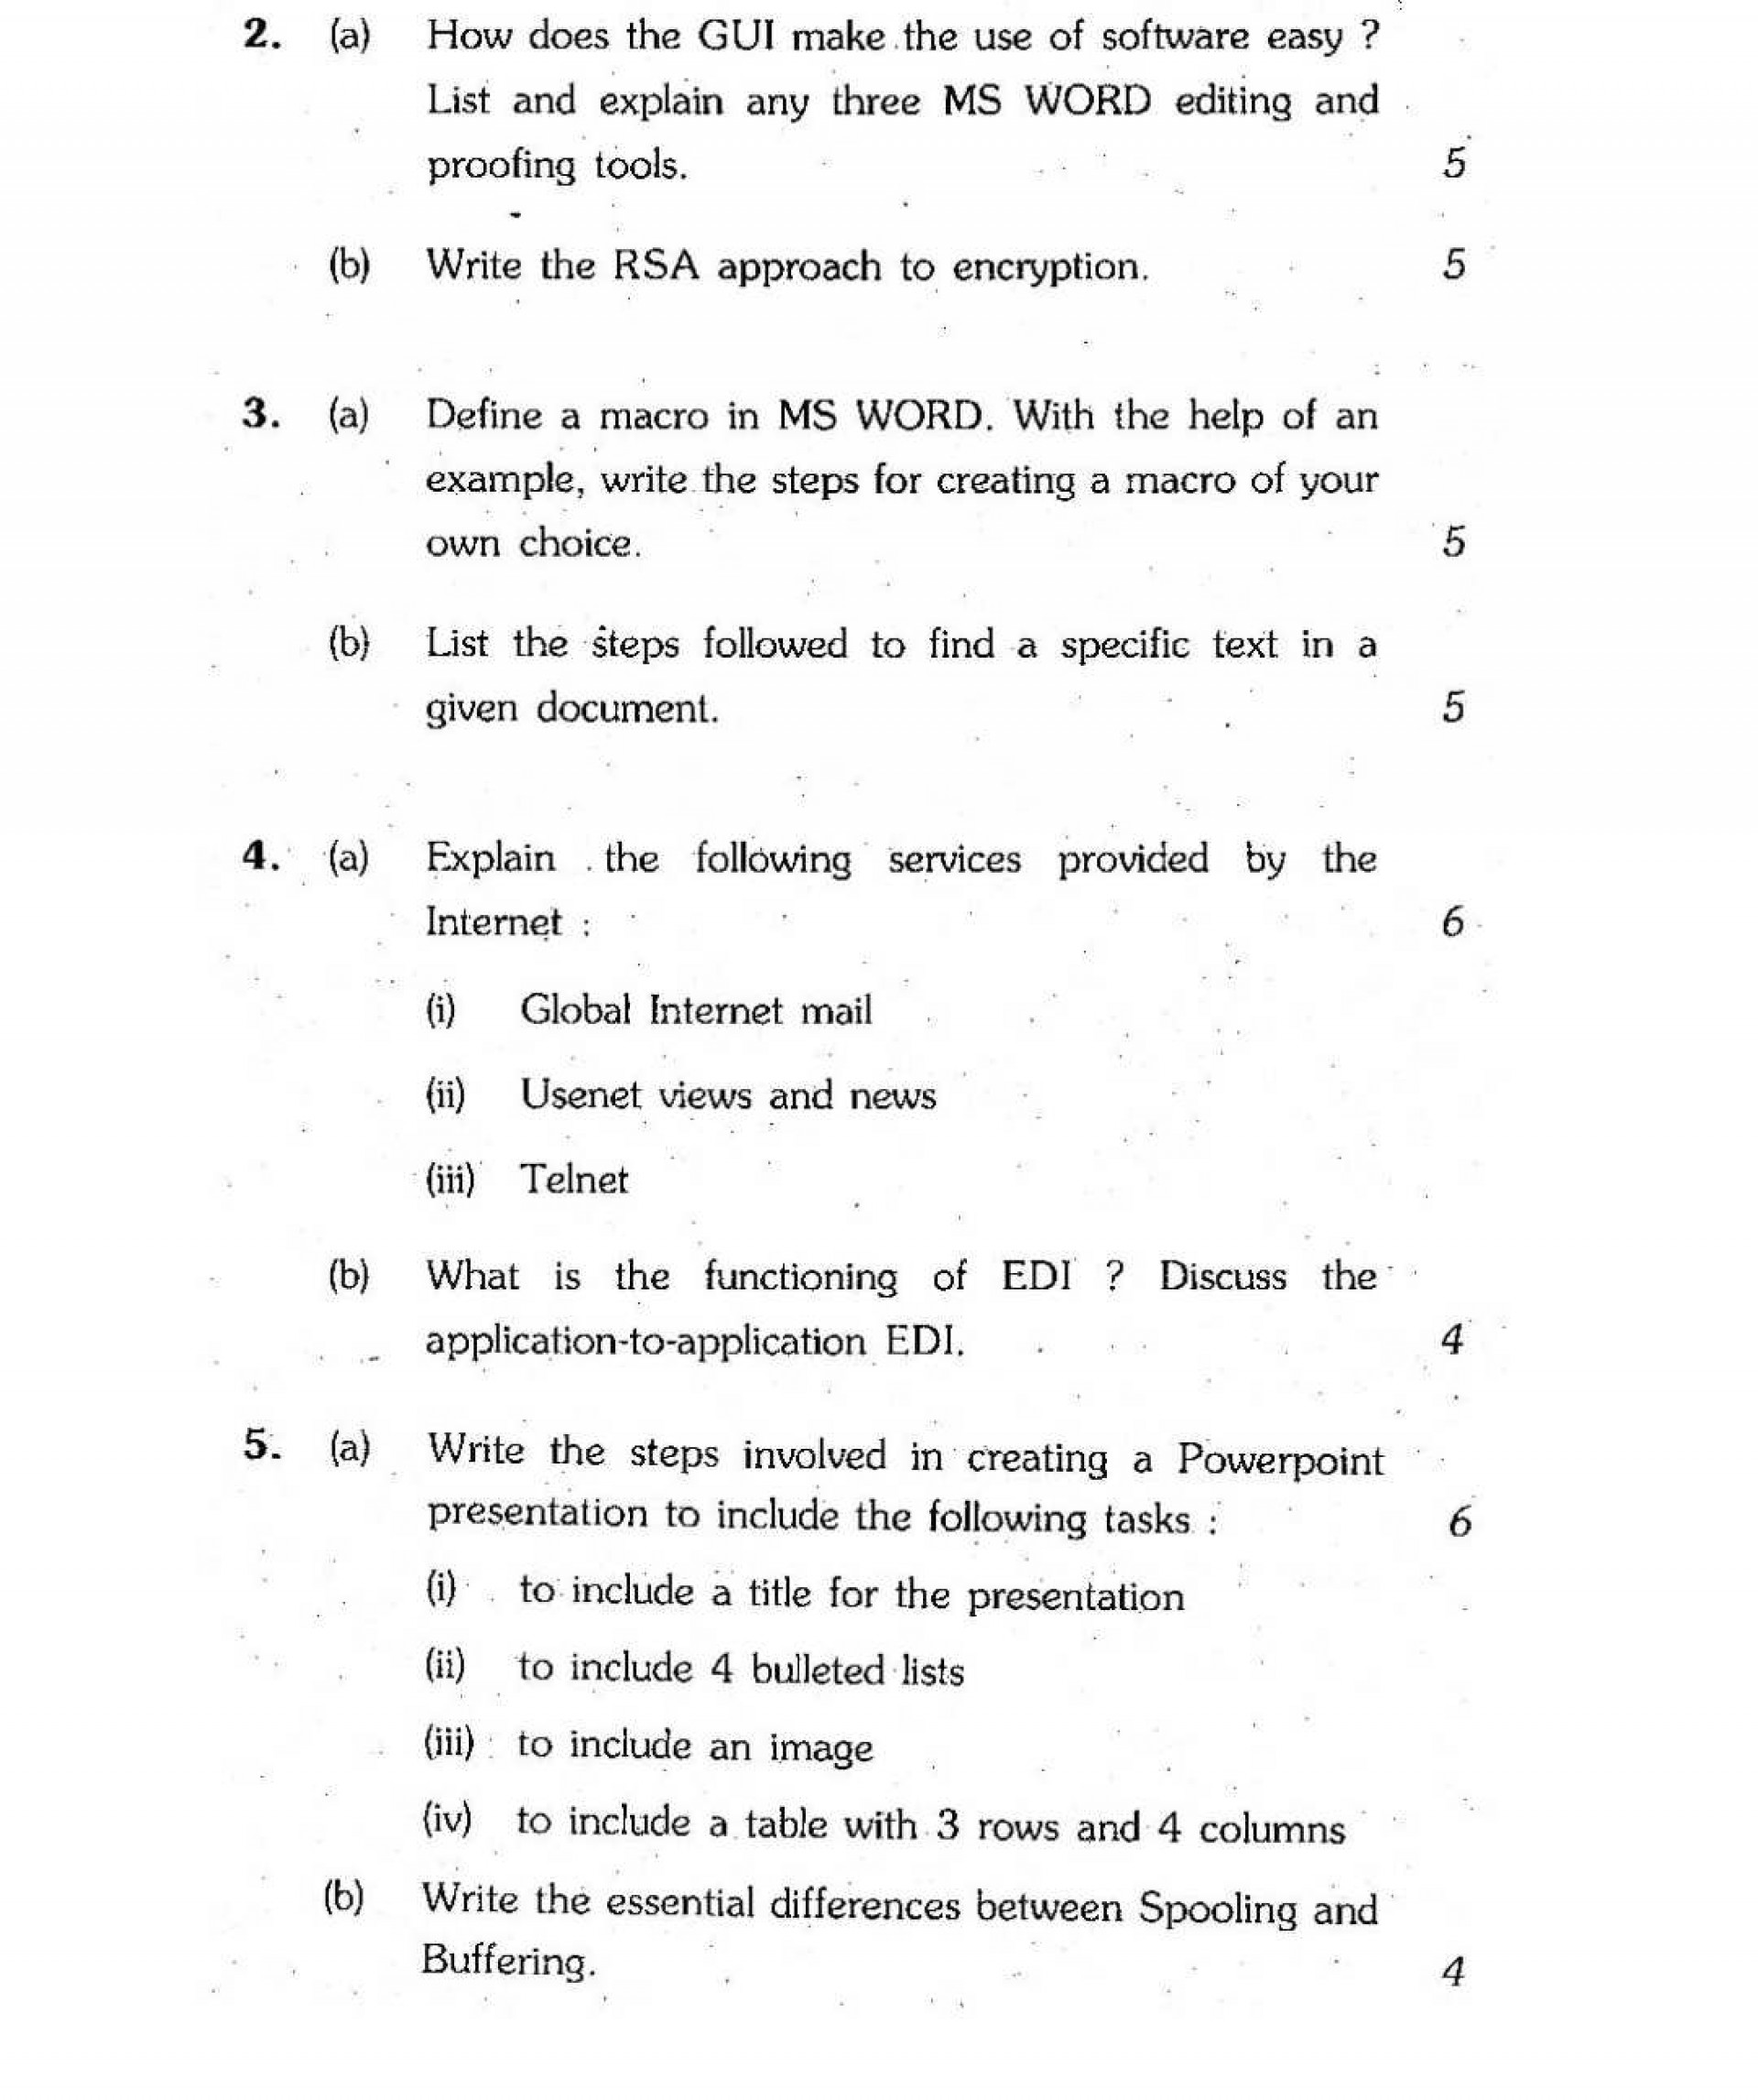 009 Ignou Computer Paper Grabbers For Essays Essay Imposing Good Interesting Attention College 1920